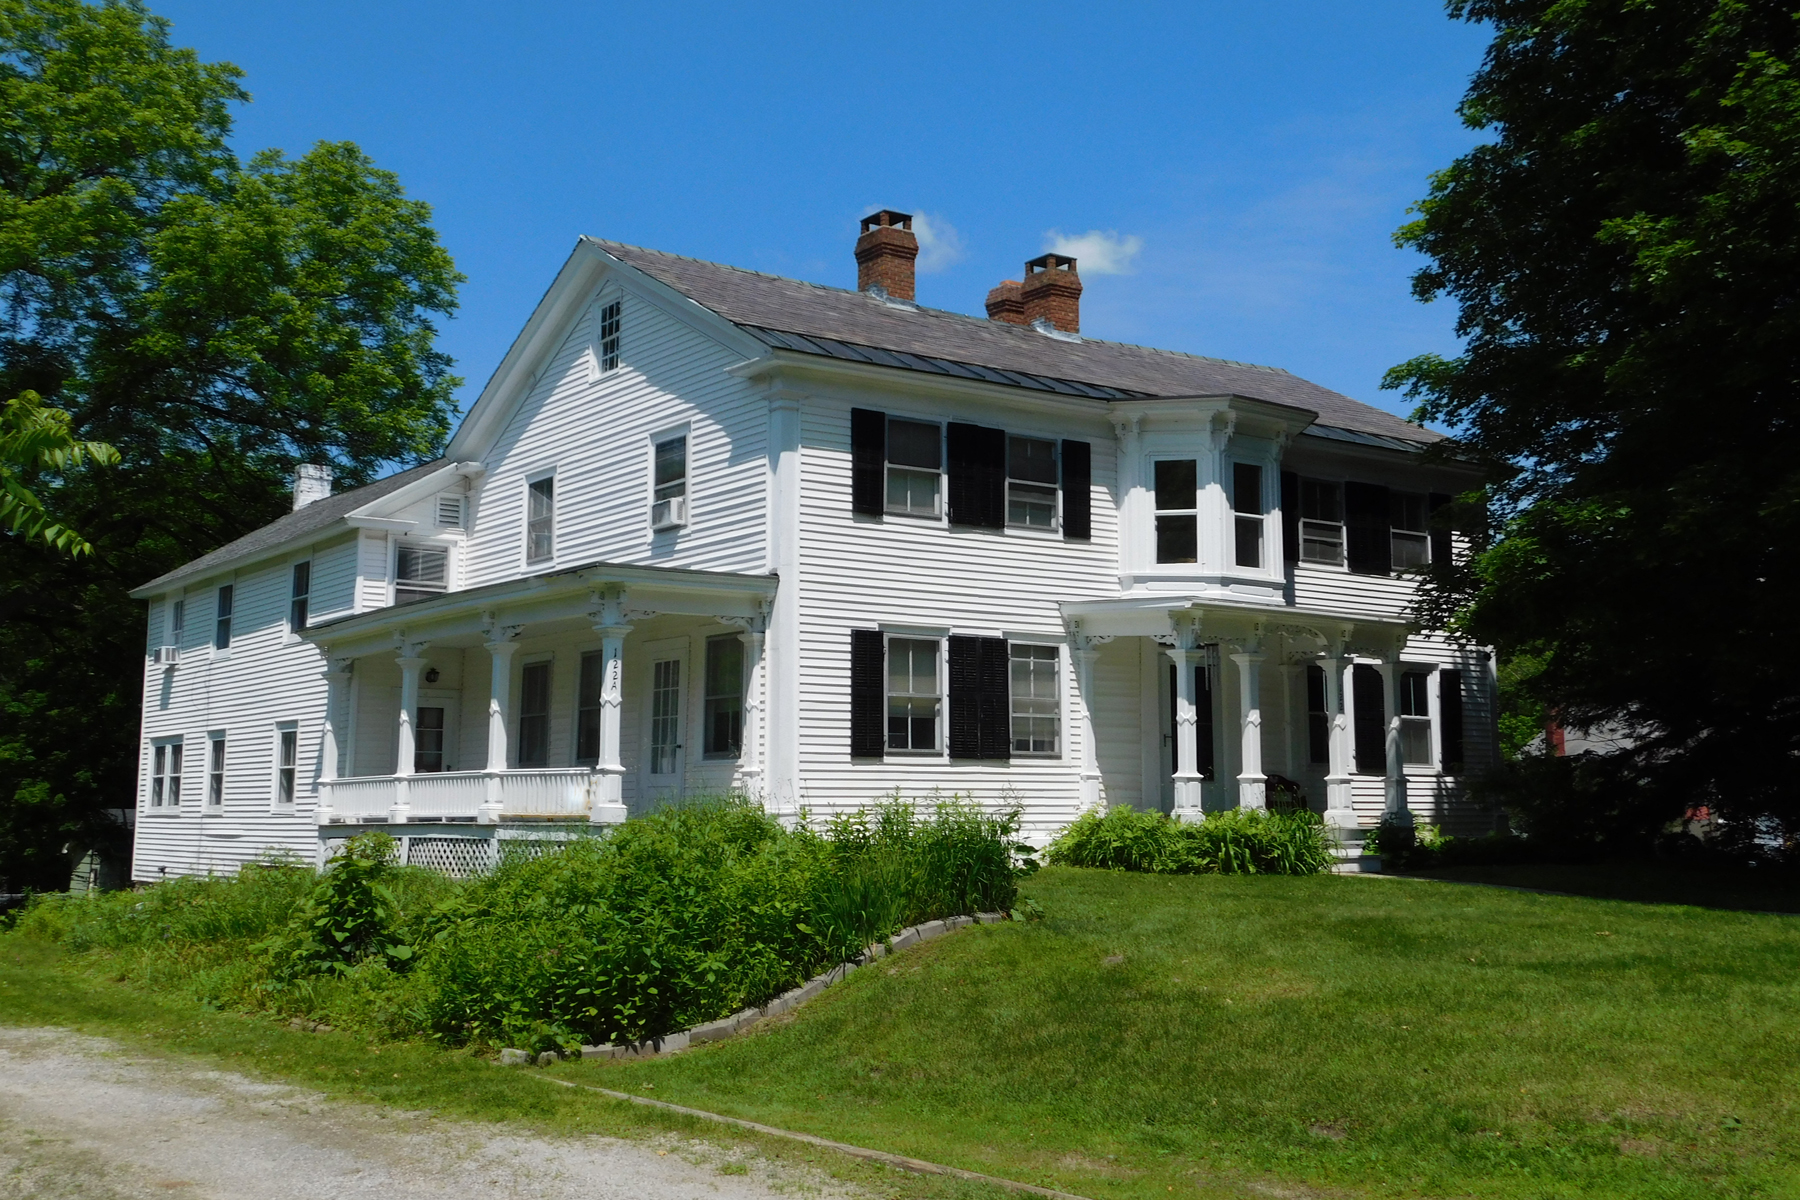 Single Family Homes for Sale at Welcome Home! 122 South Main St Wallingford, Vermont 05773 United States